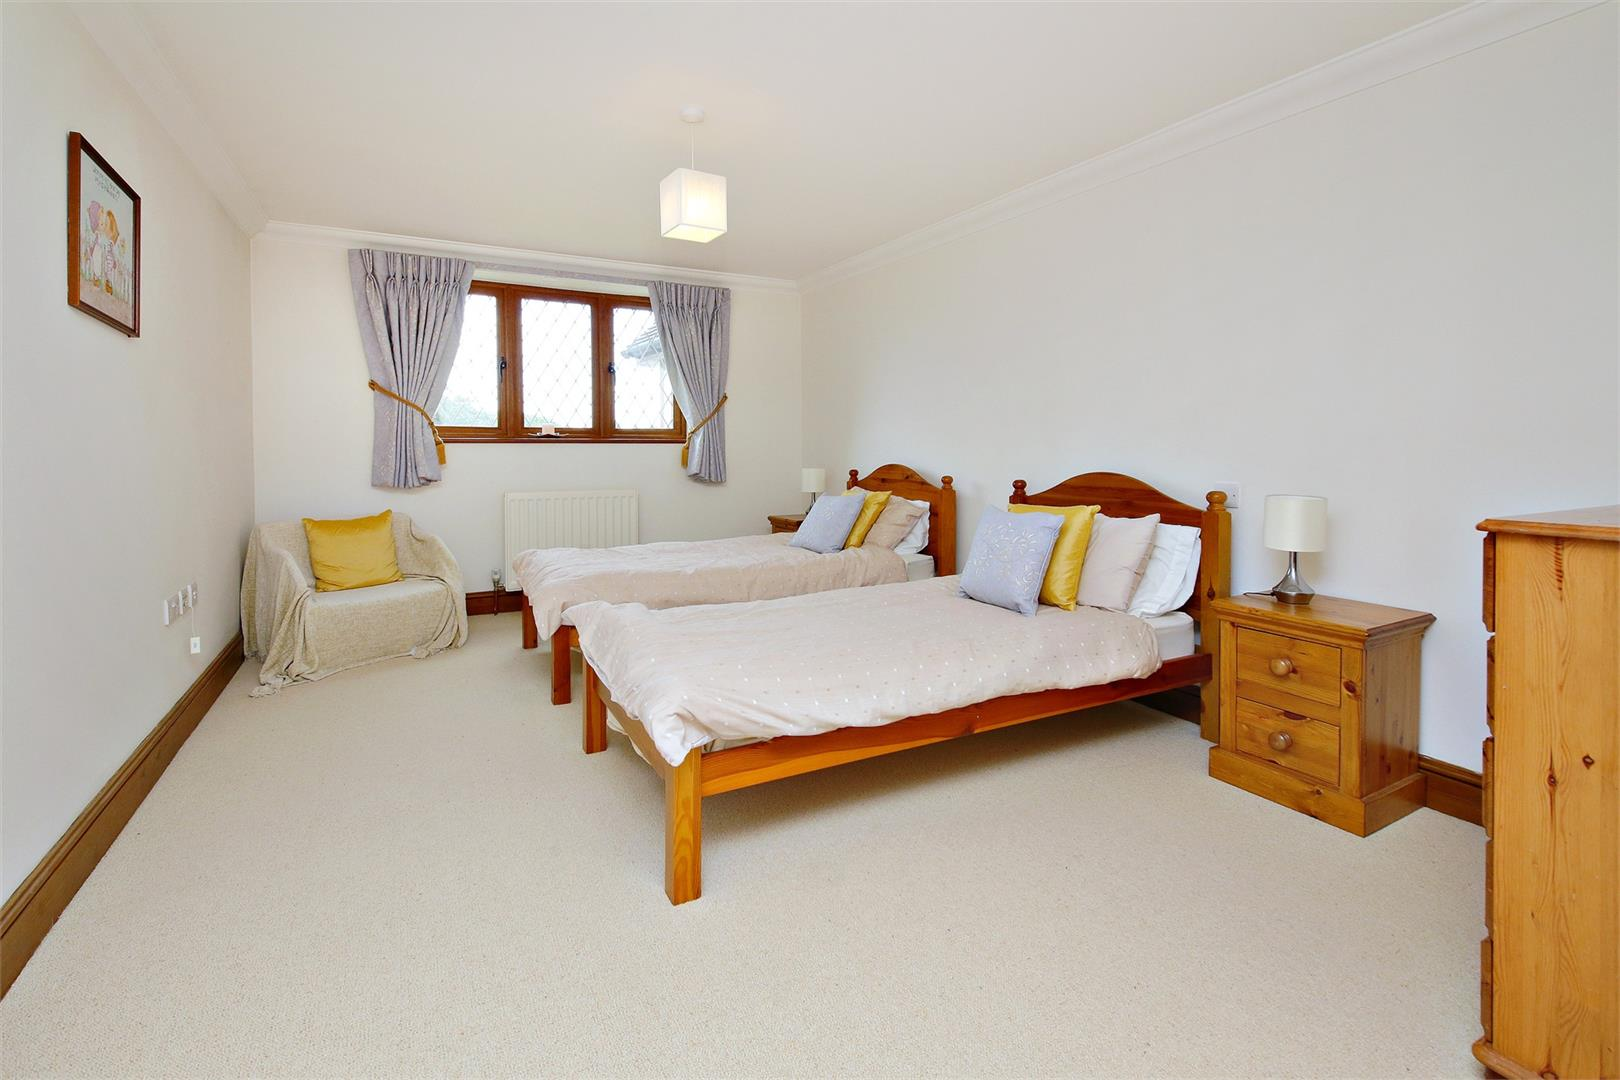 6 bed to rent in Elstree - (Property Image 7)